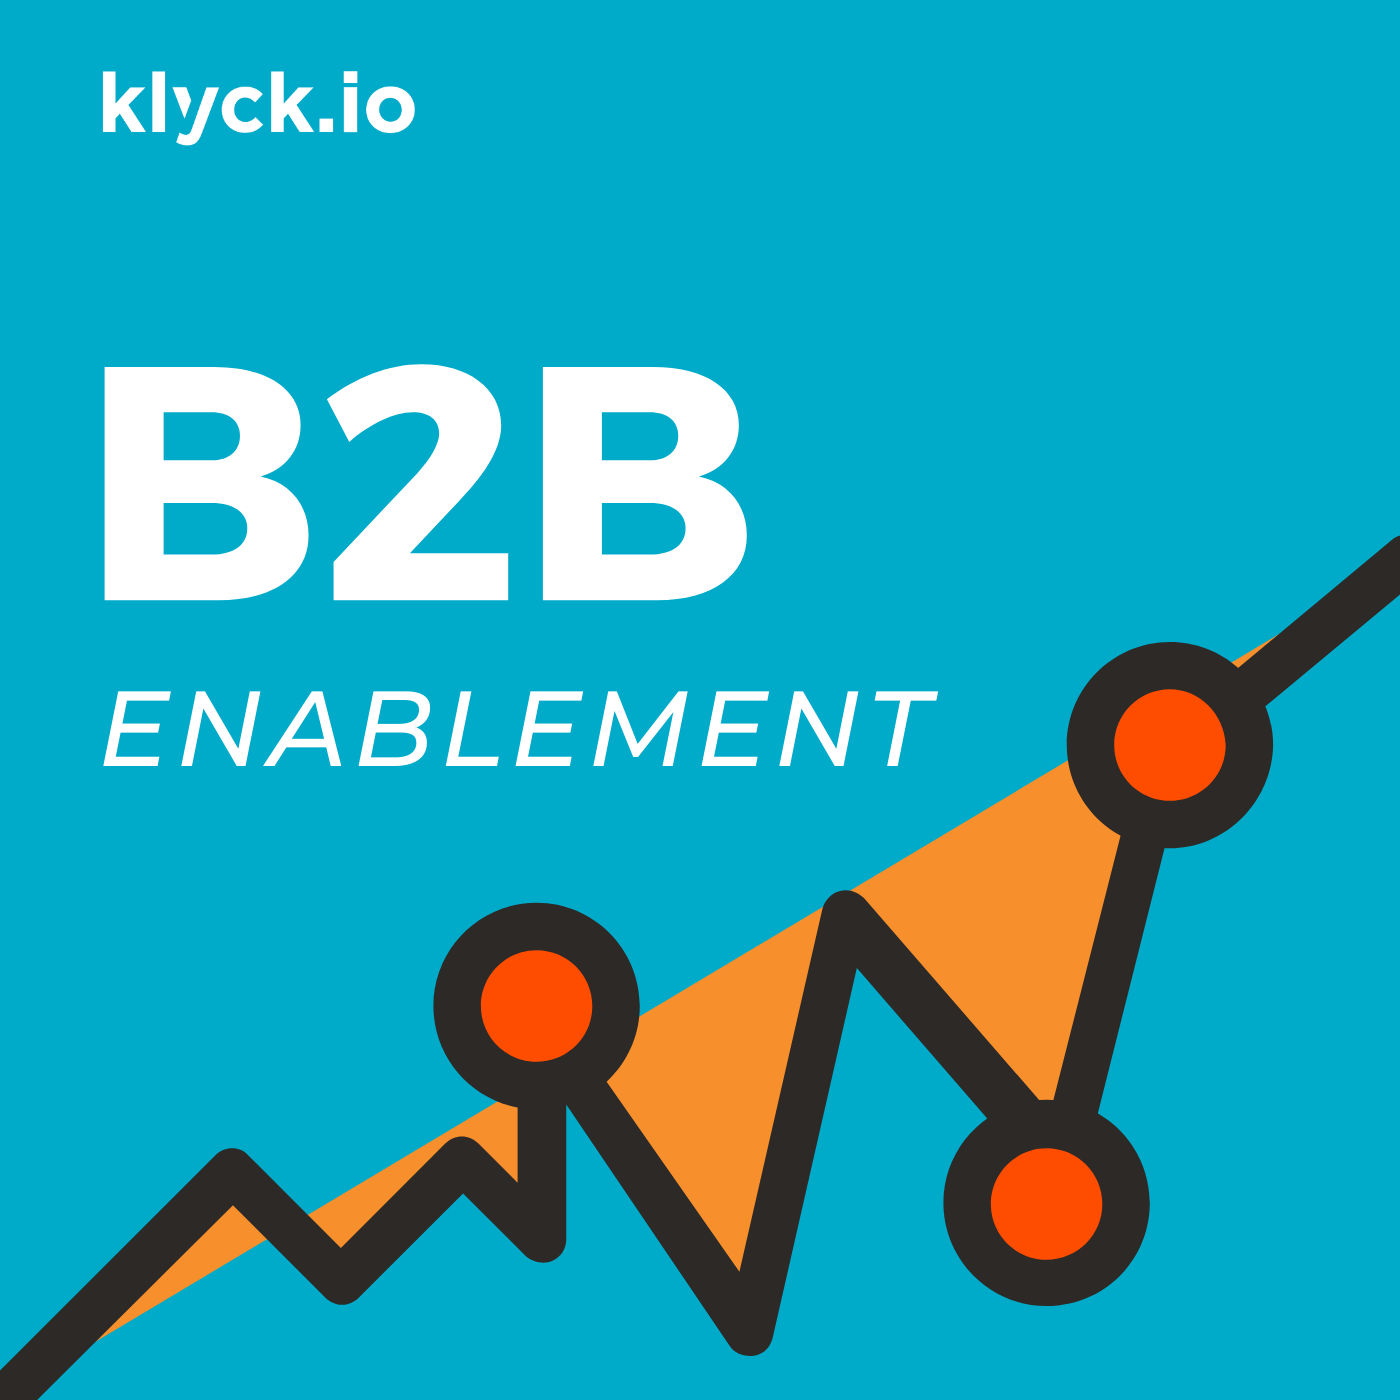 B2B Enablement - A sales enablement podcast from Klyck.io